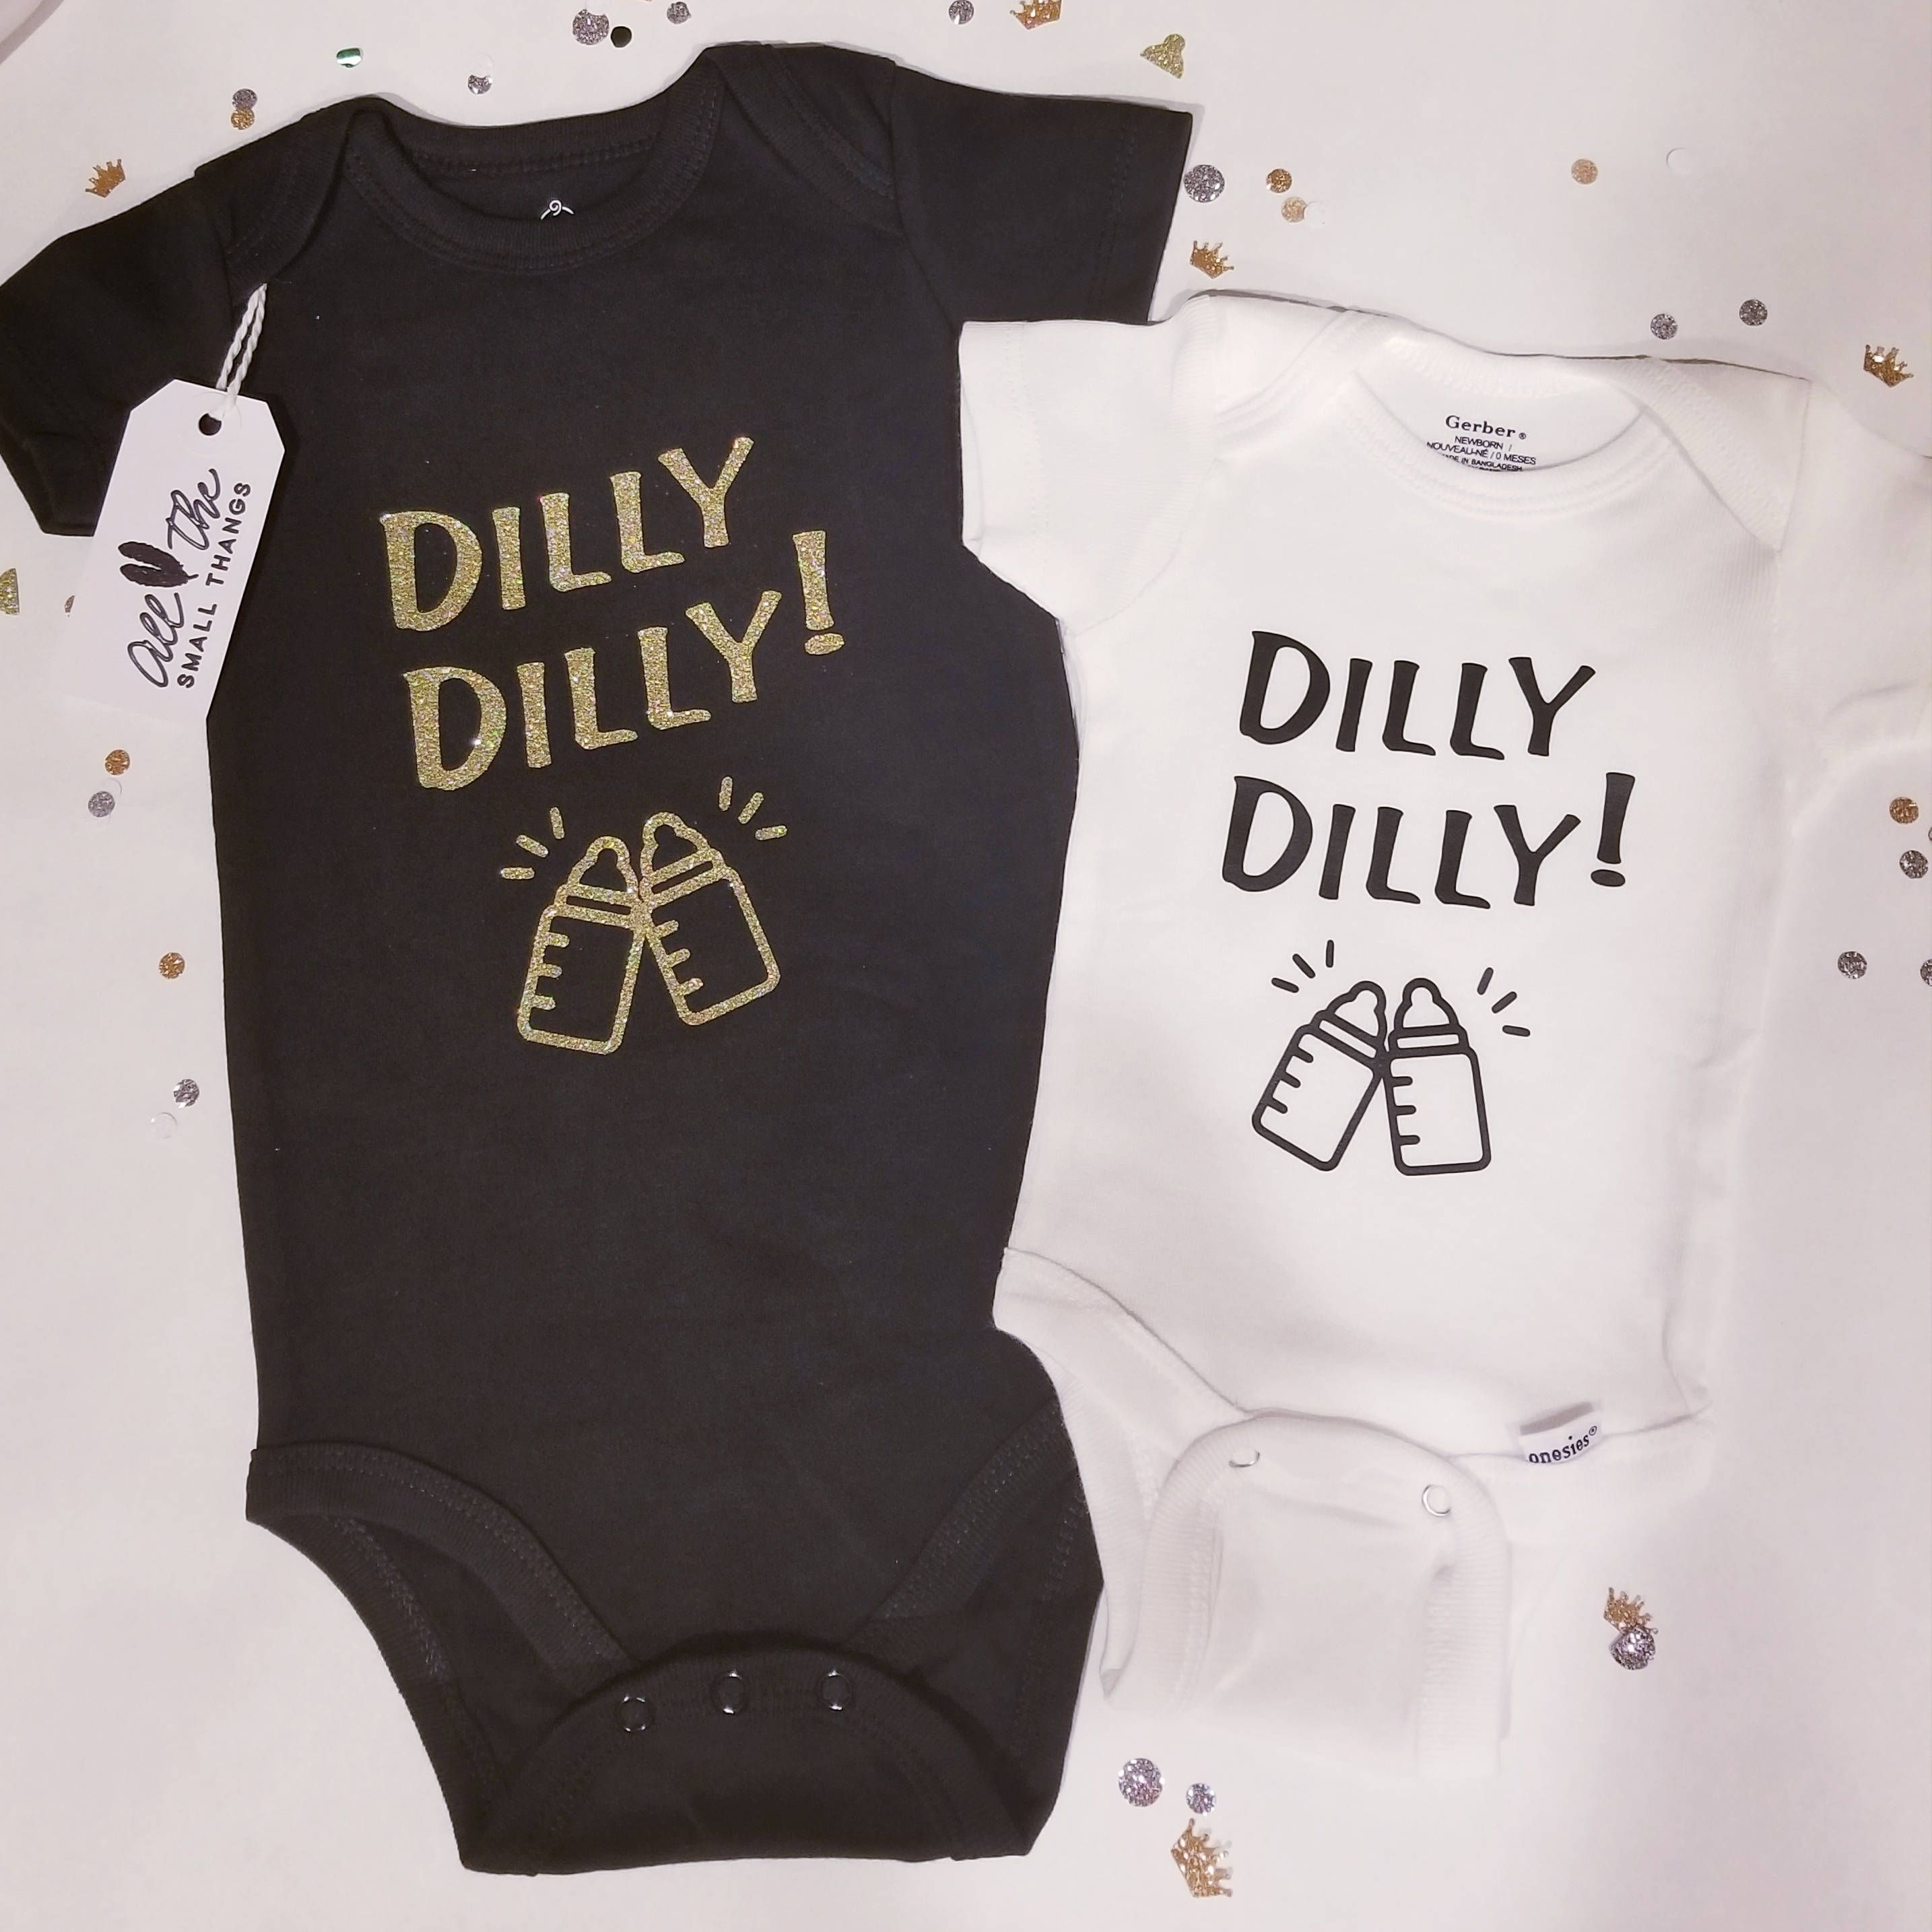 91b401e83 Dilly dilly, Cheers, New Years onesie, New Years, baby onesie, funny onesies,  baby girl, baby boy, baby shower by AllTheSmallThangs on Etsy